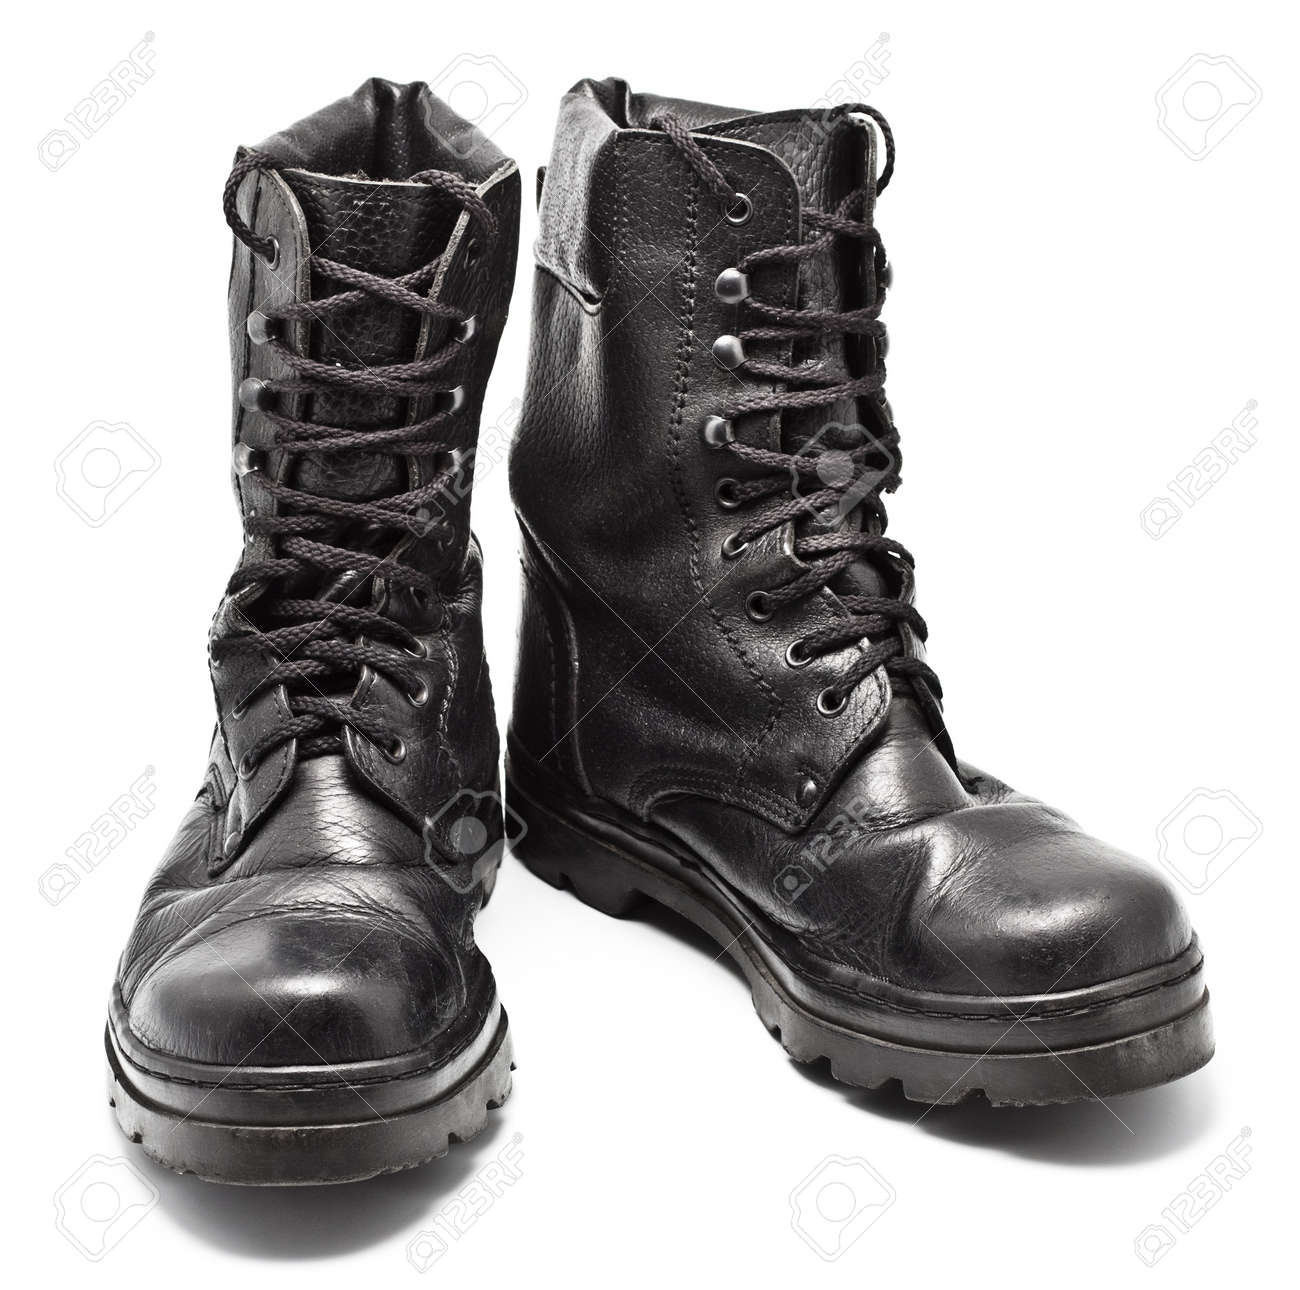 Black Leather Army Boots Isolated On